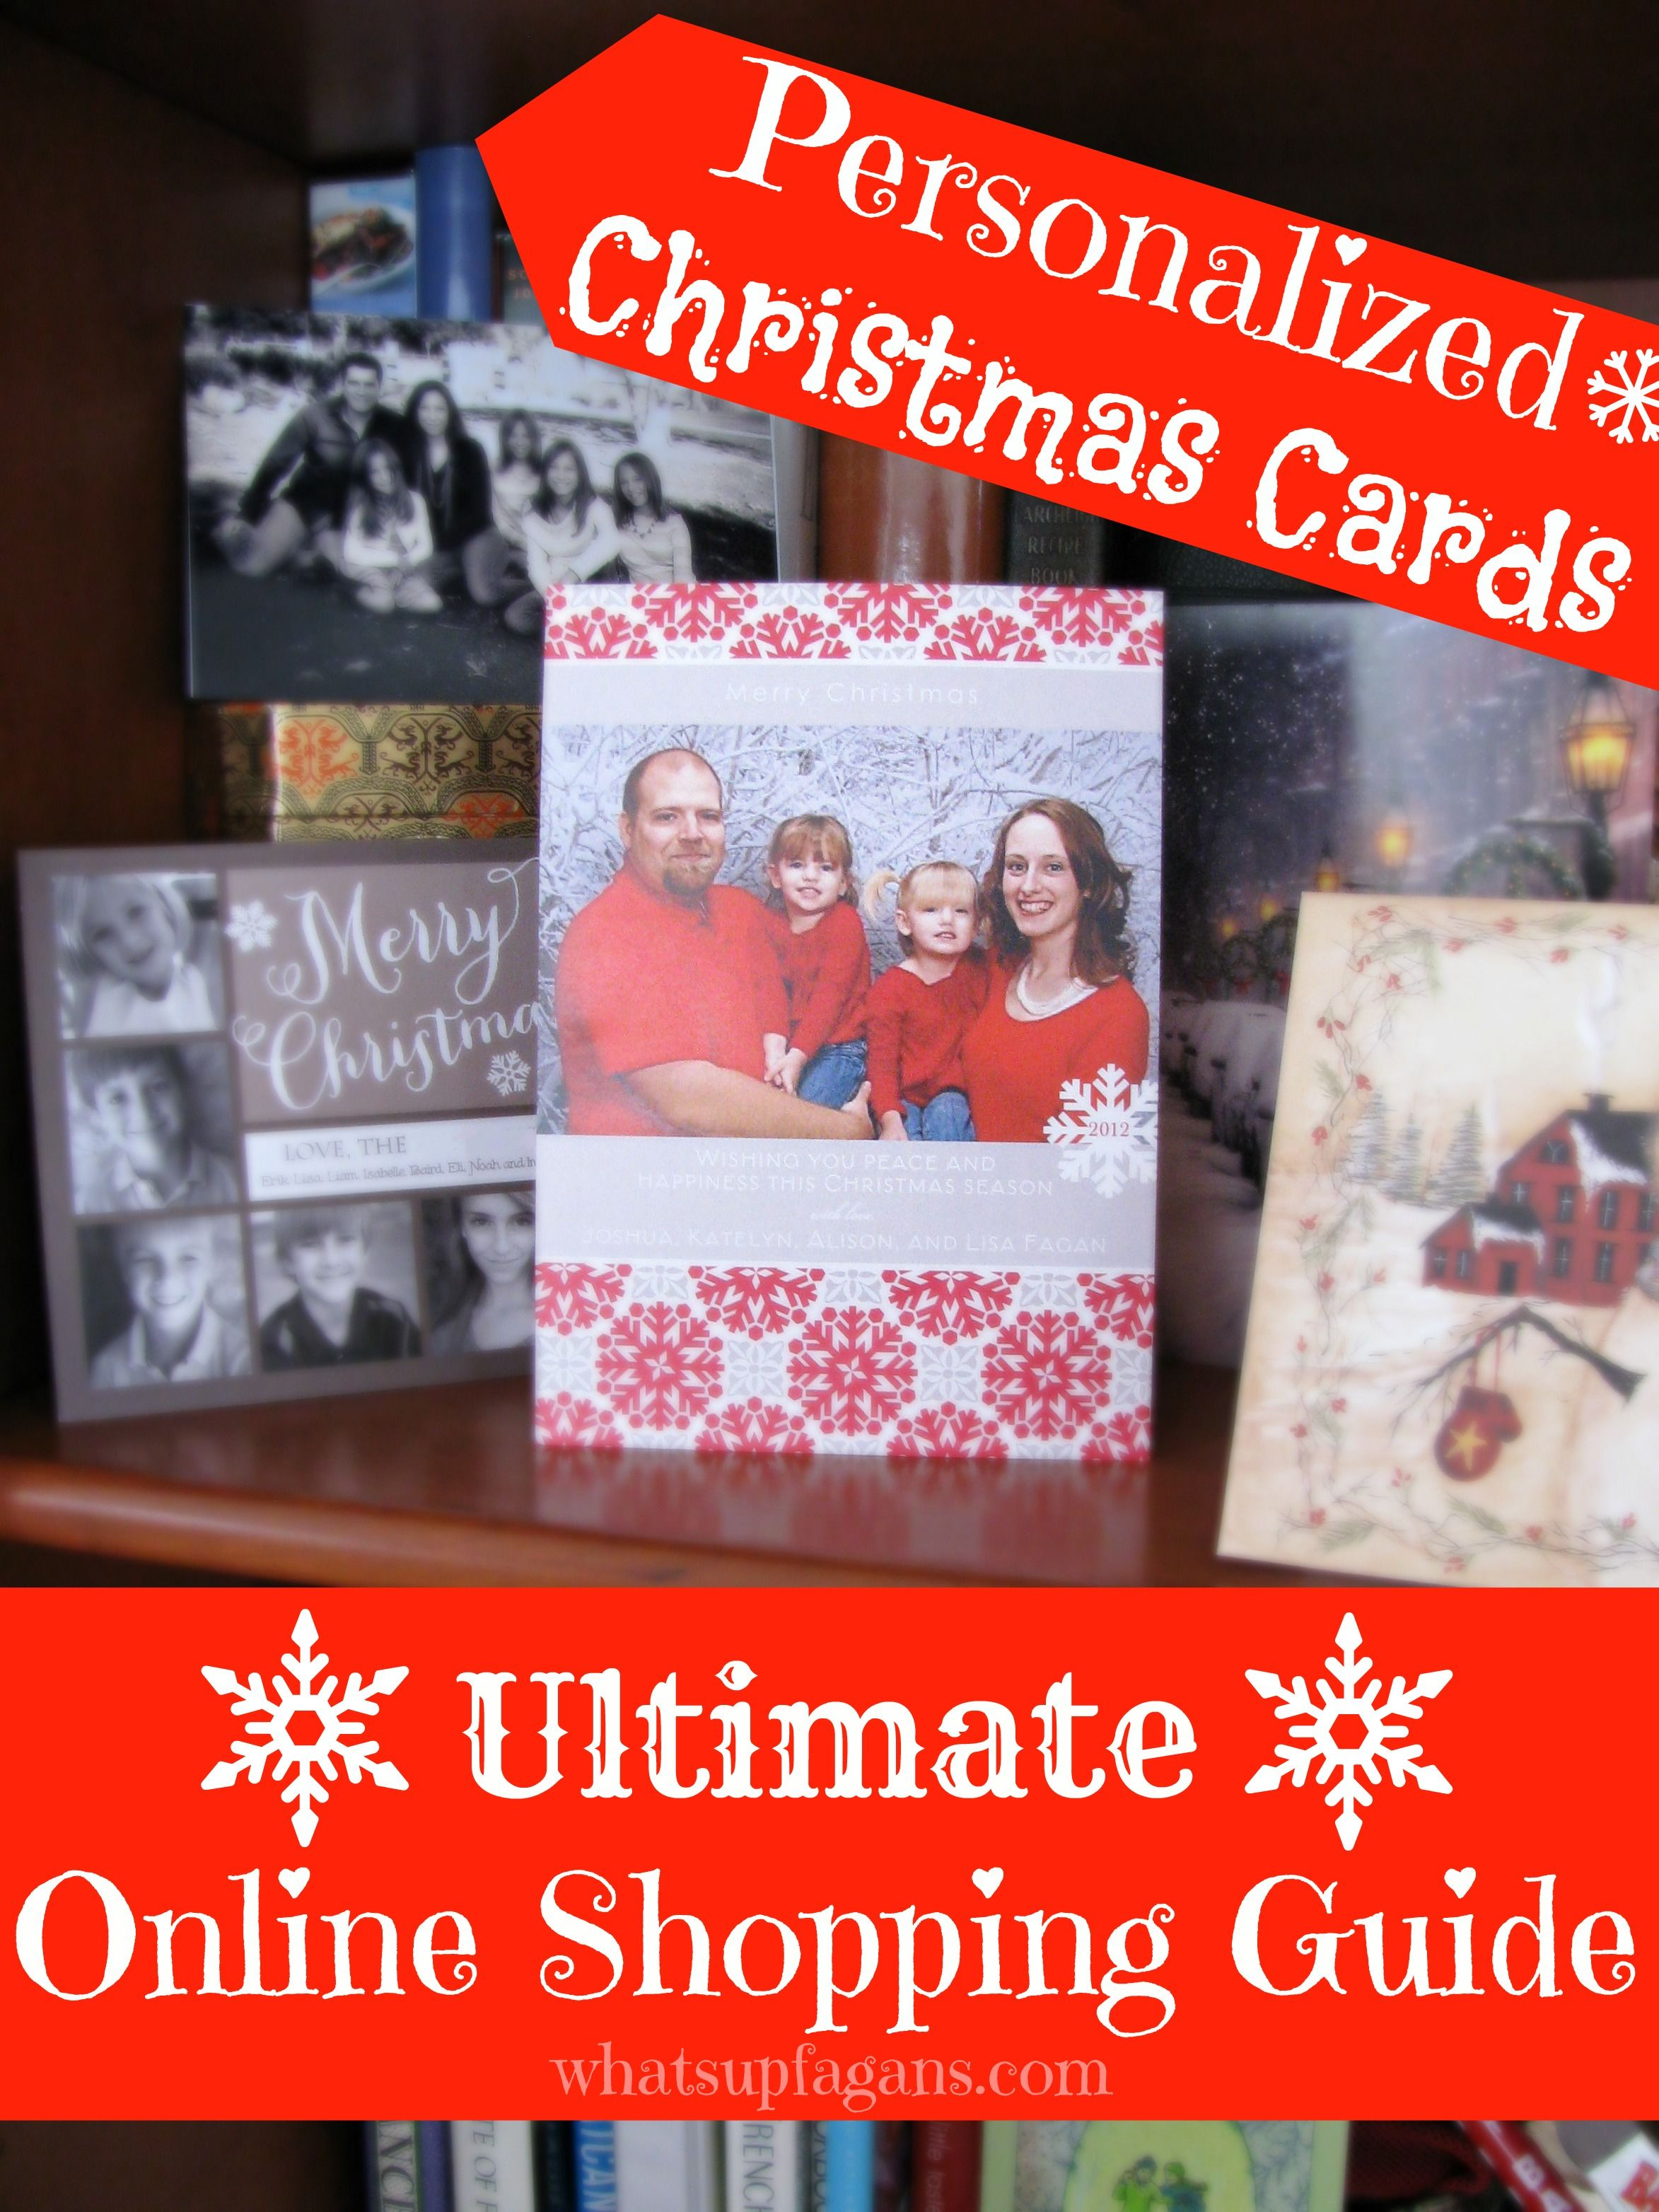 Personalized Christmas Cards: Online Shopping Guide | Pinterest ...